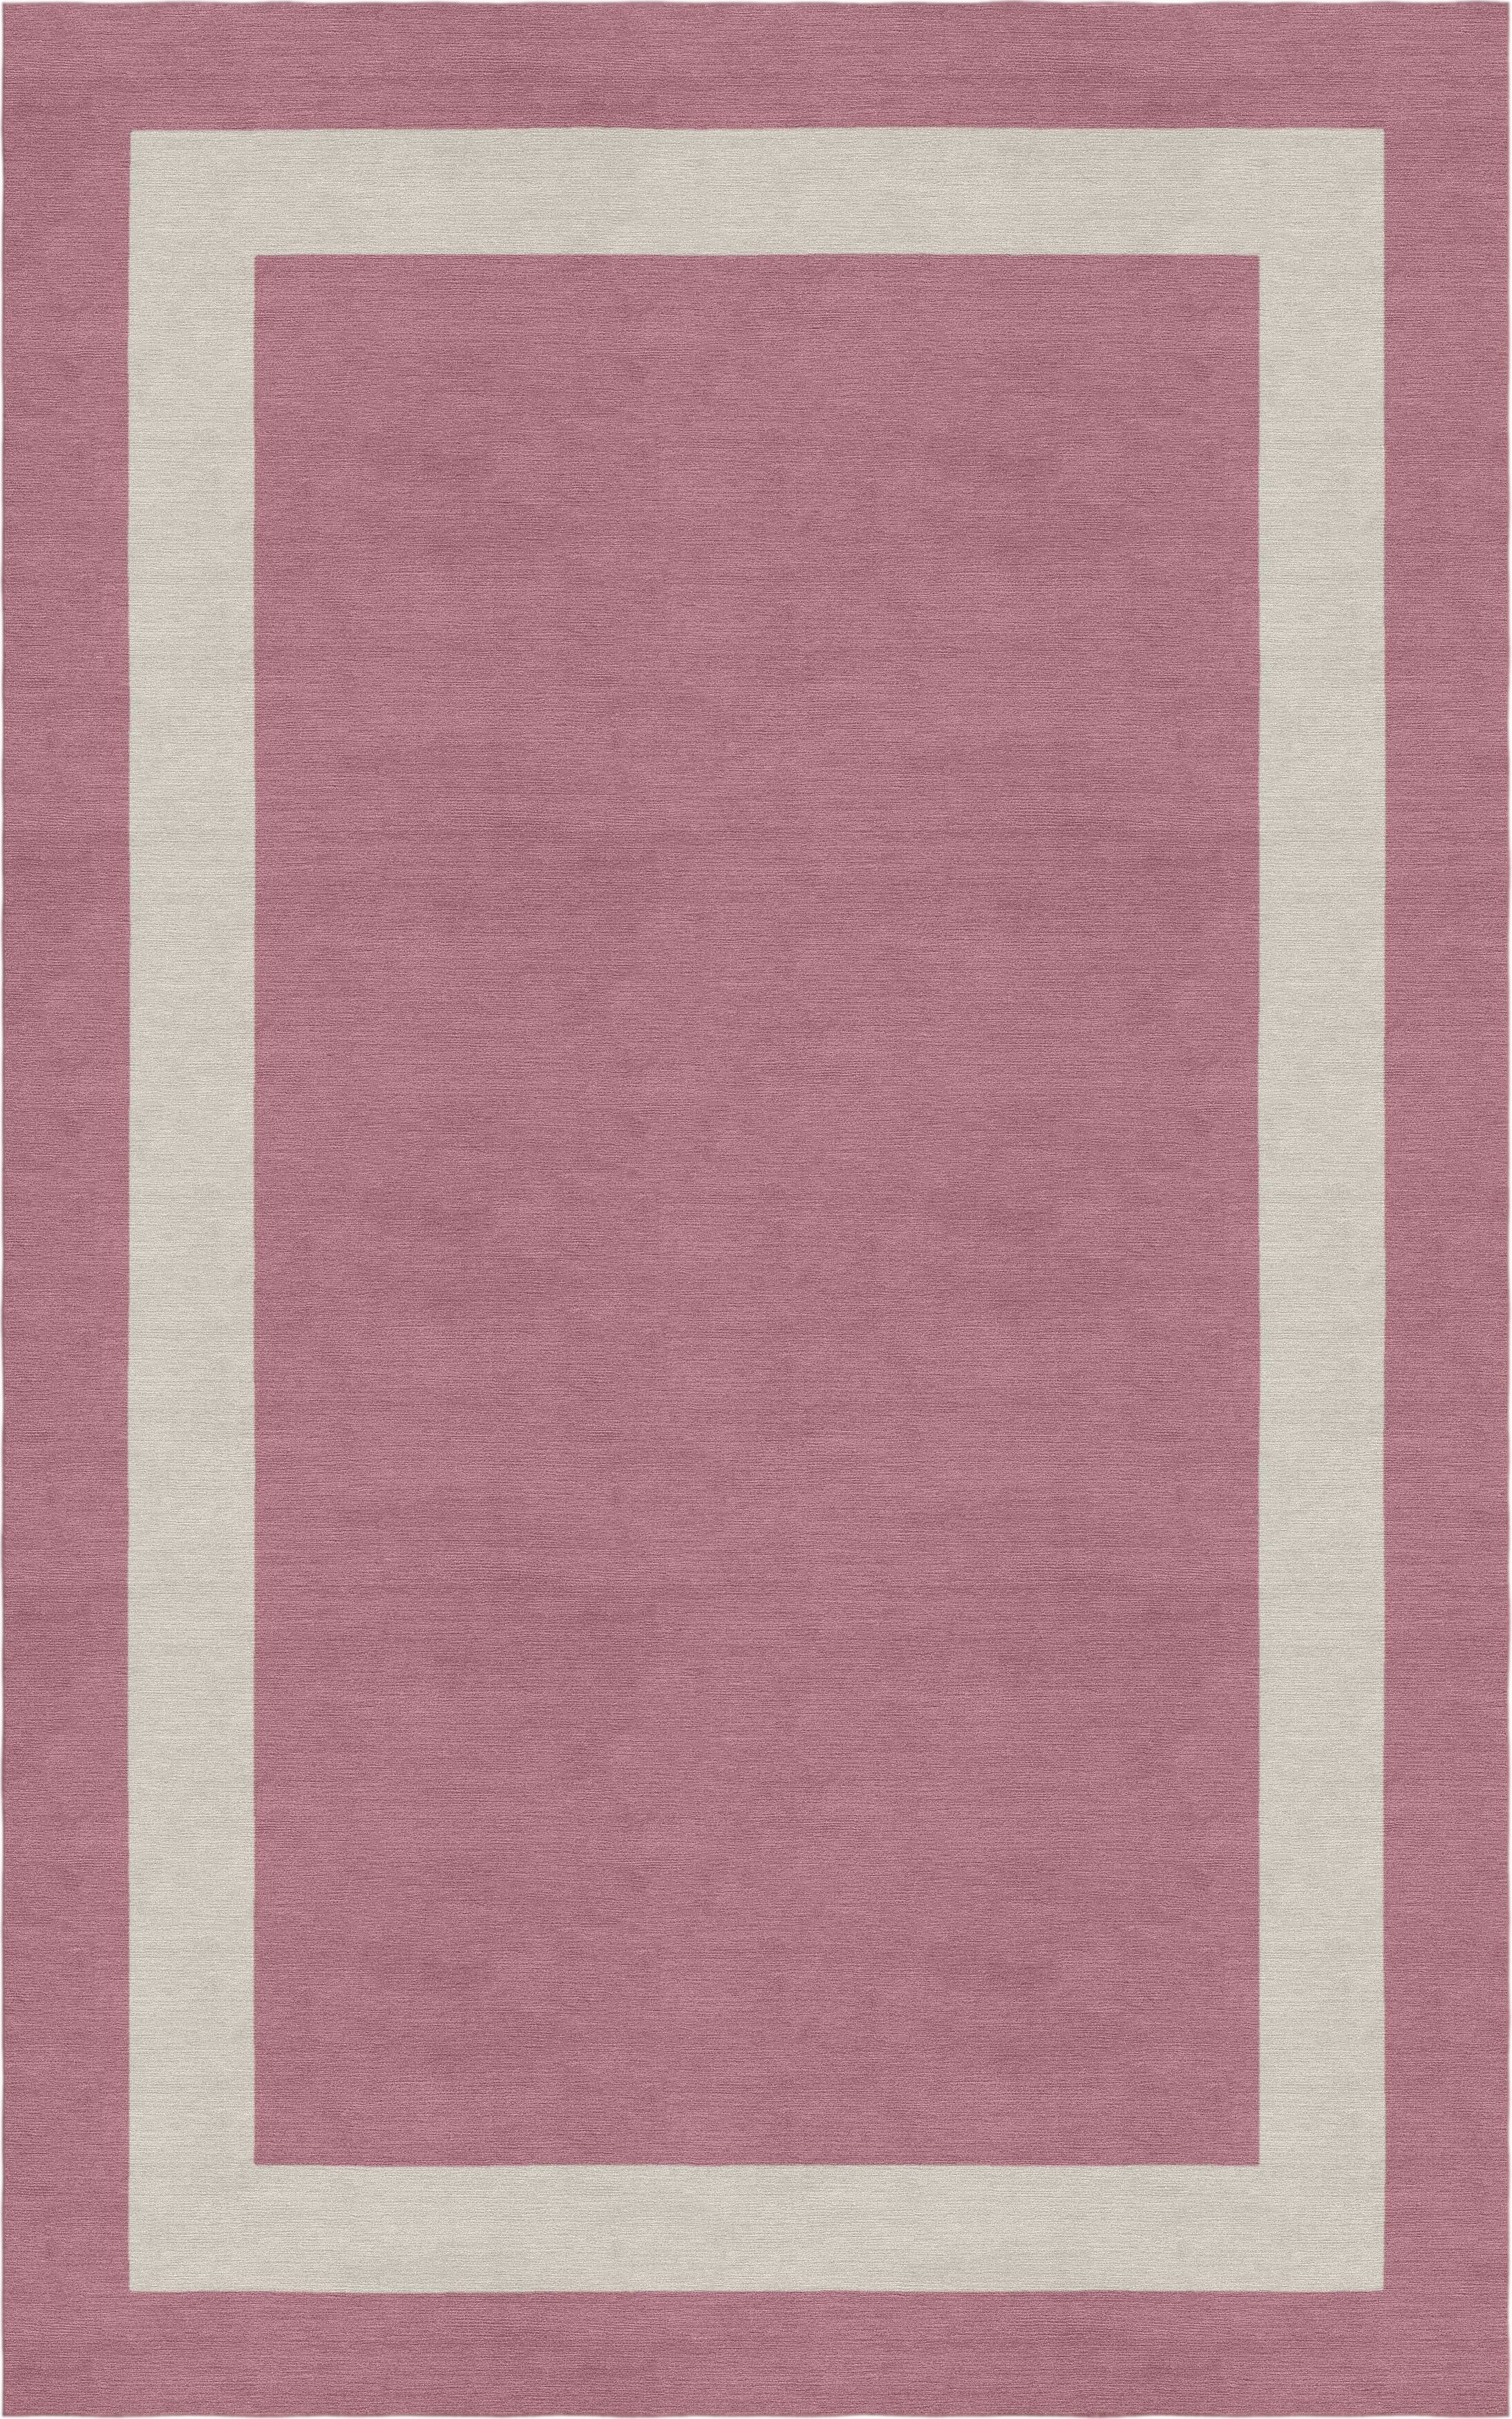 Hewins Border Hand-Tufted Wool Purple/Silver Area Rug Rug Size: Rectangle 9' x 12'